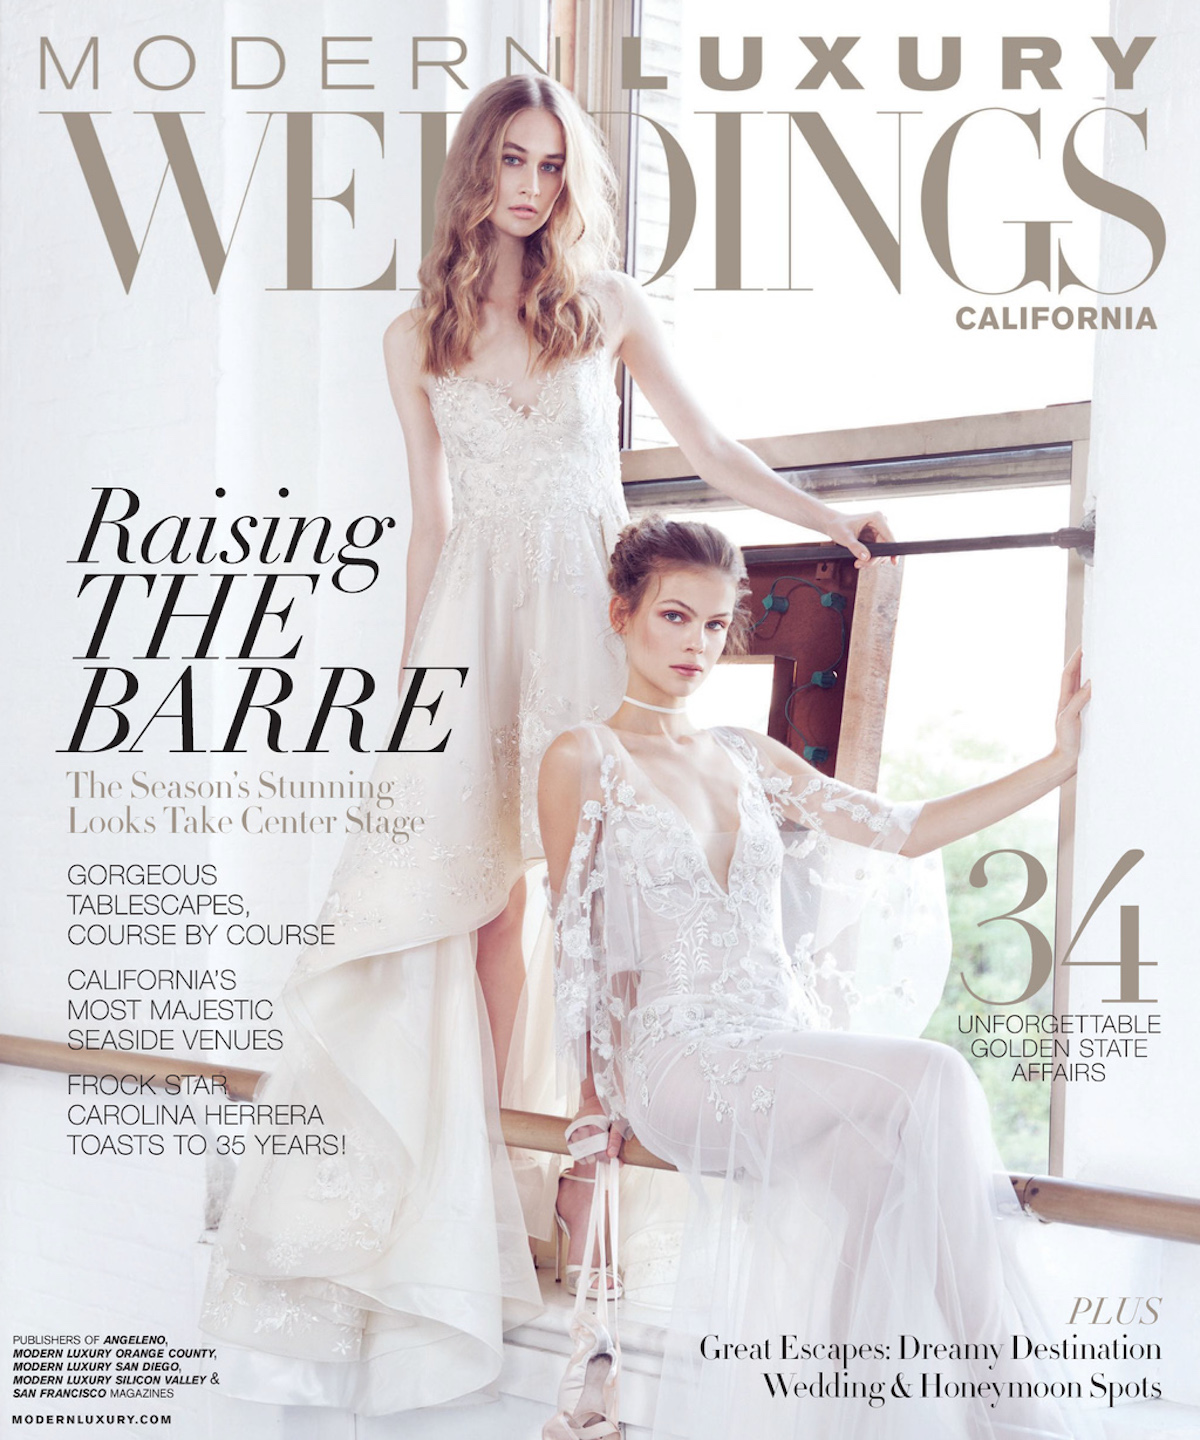 Modern Luxury Weddings Fall 2016